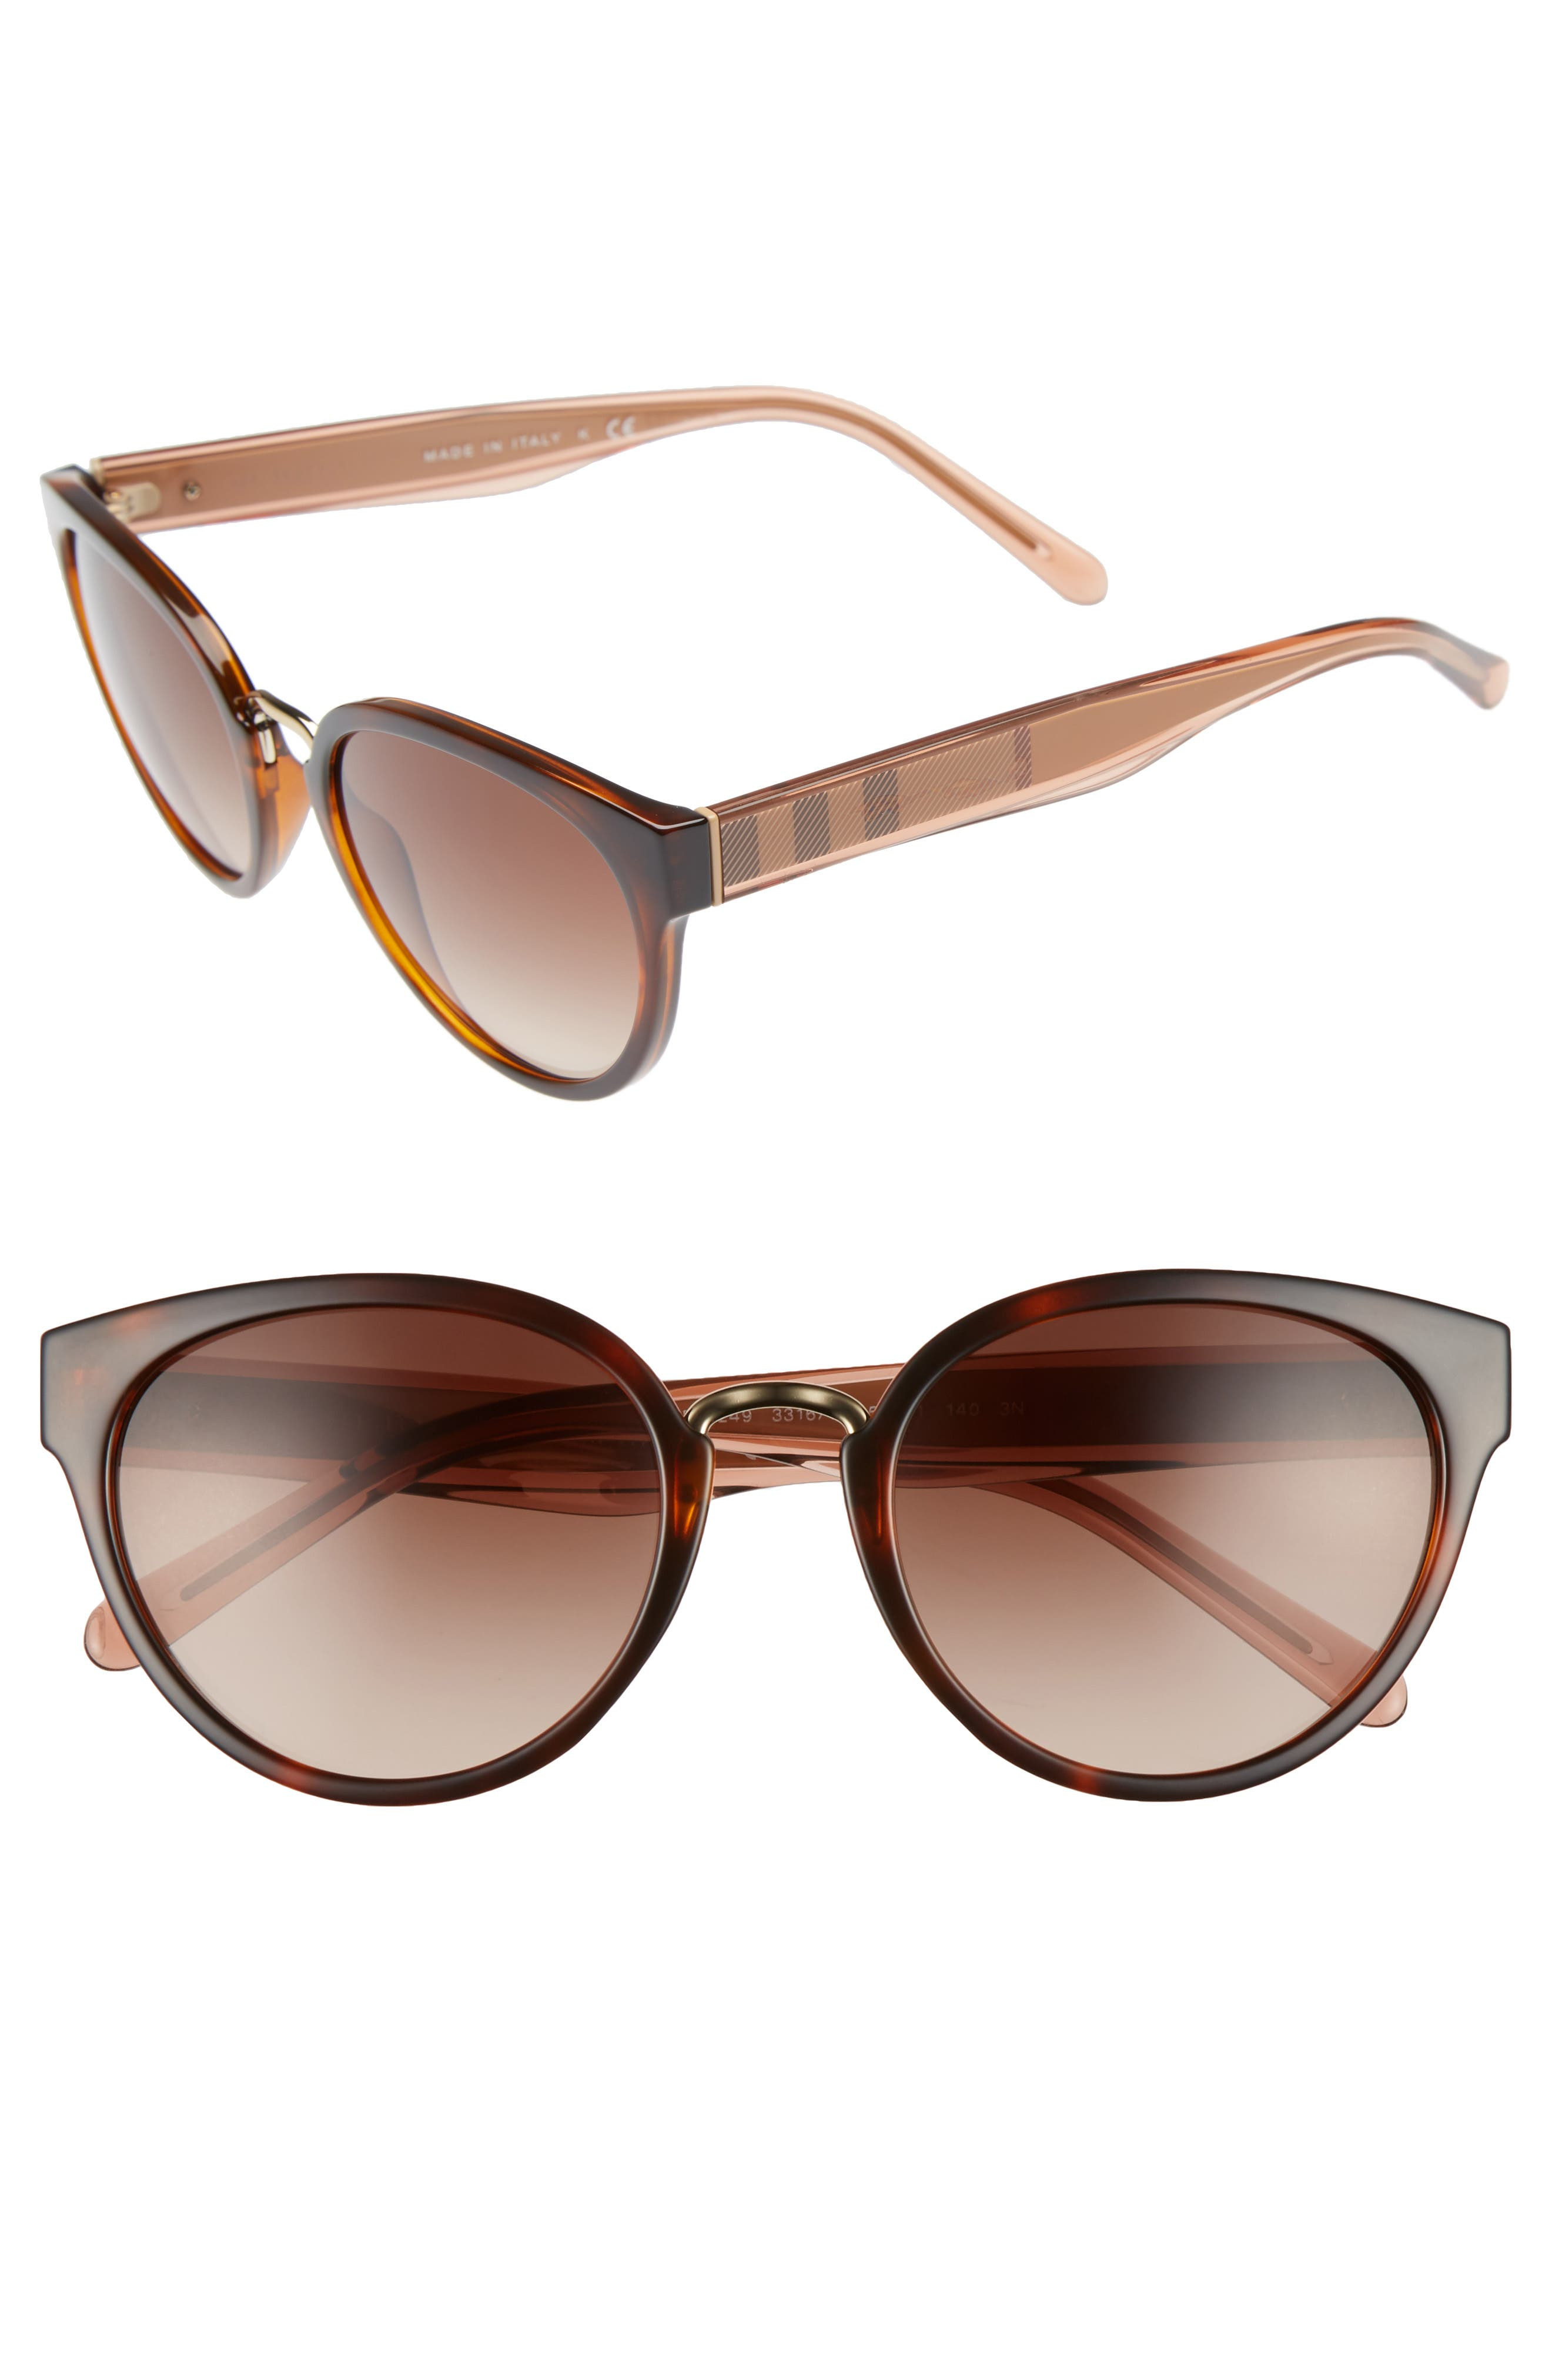 53mm Gradient Cat Eye Sunglasses,                         Main,                         color, Brown Havana